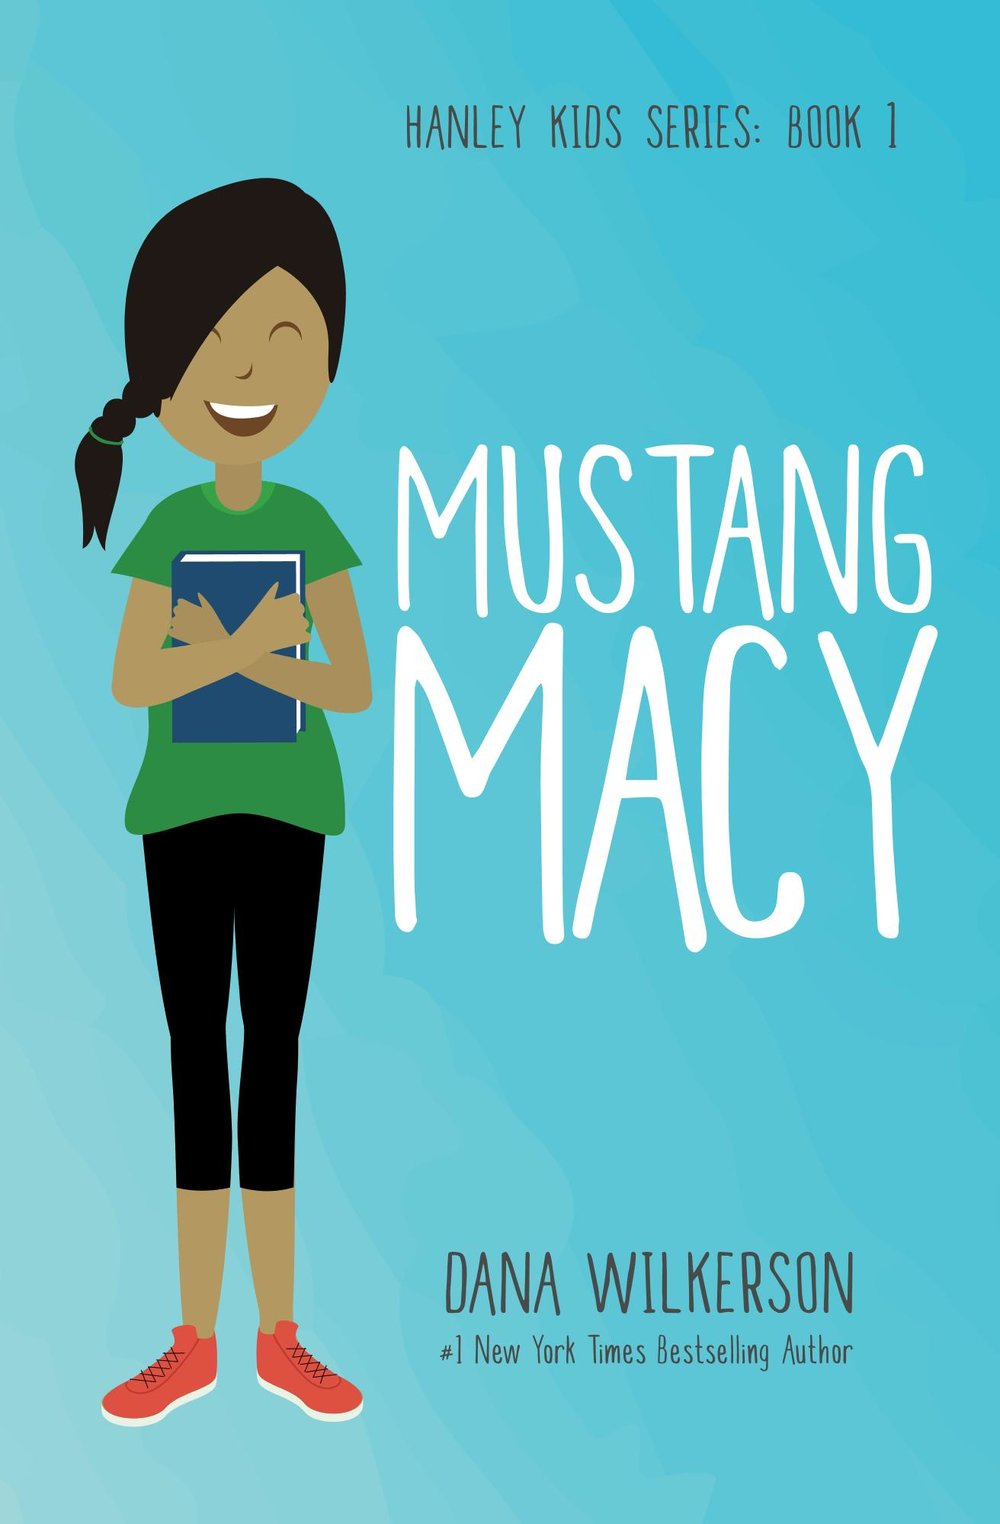 Hanley Kids Series Book 1: Mustang Macy Sample Chapter